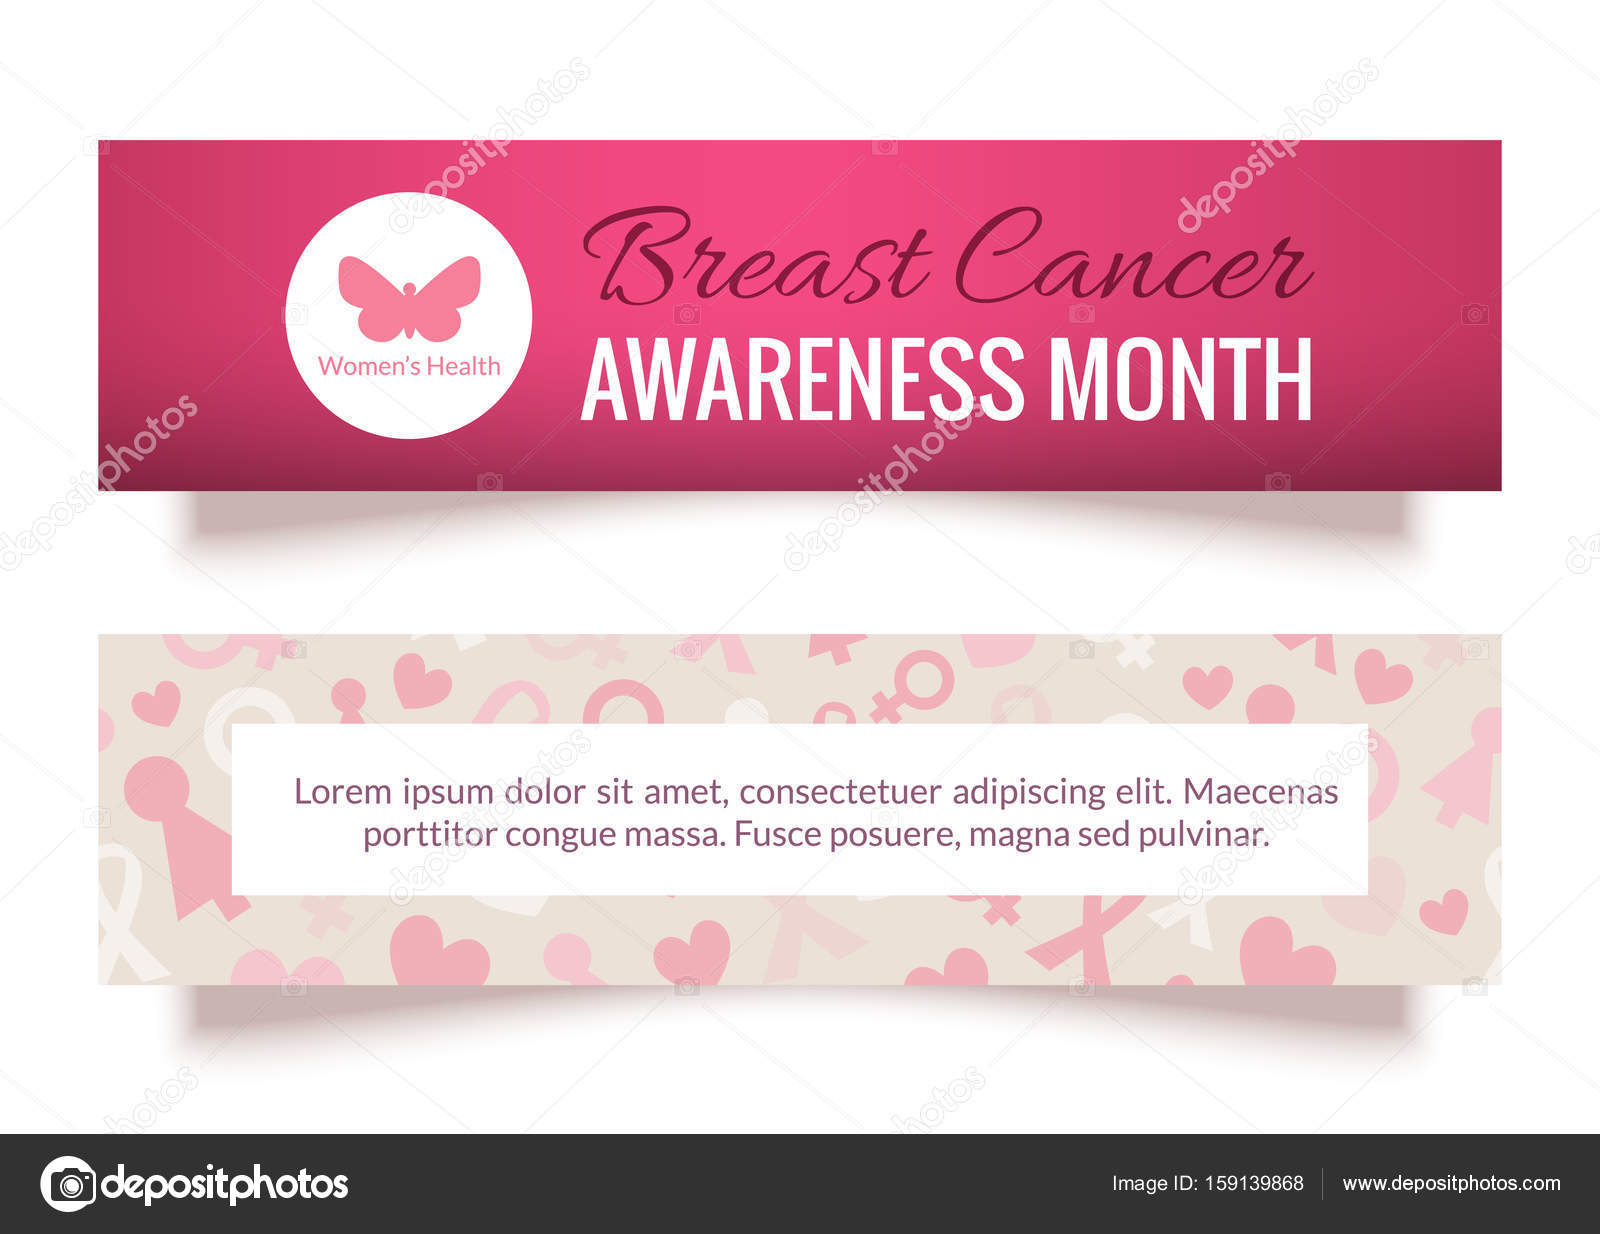 Breast Cancer Awareness Month Banners or Cards Set — Stock Vector ...